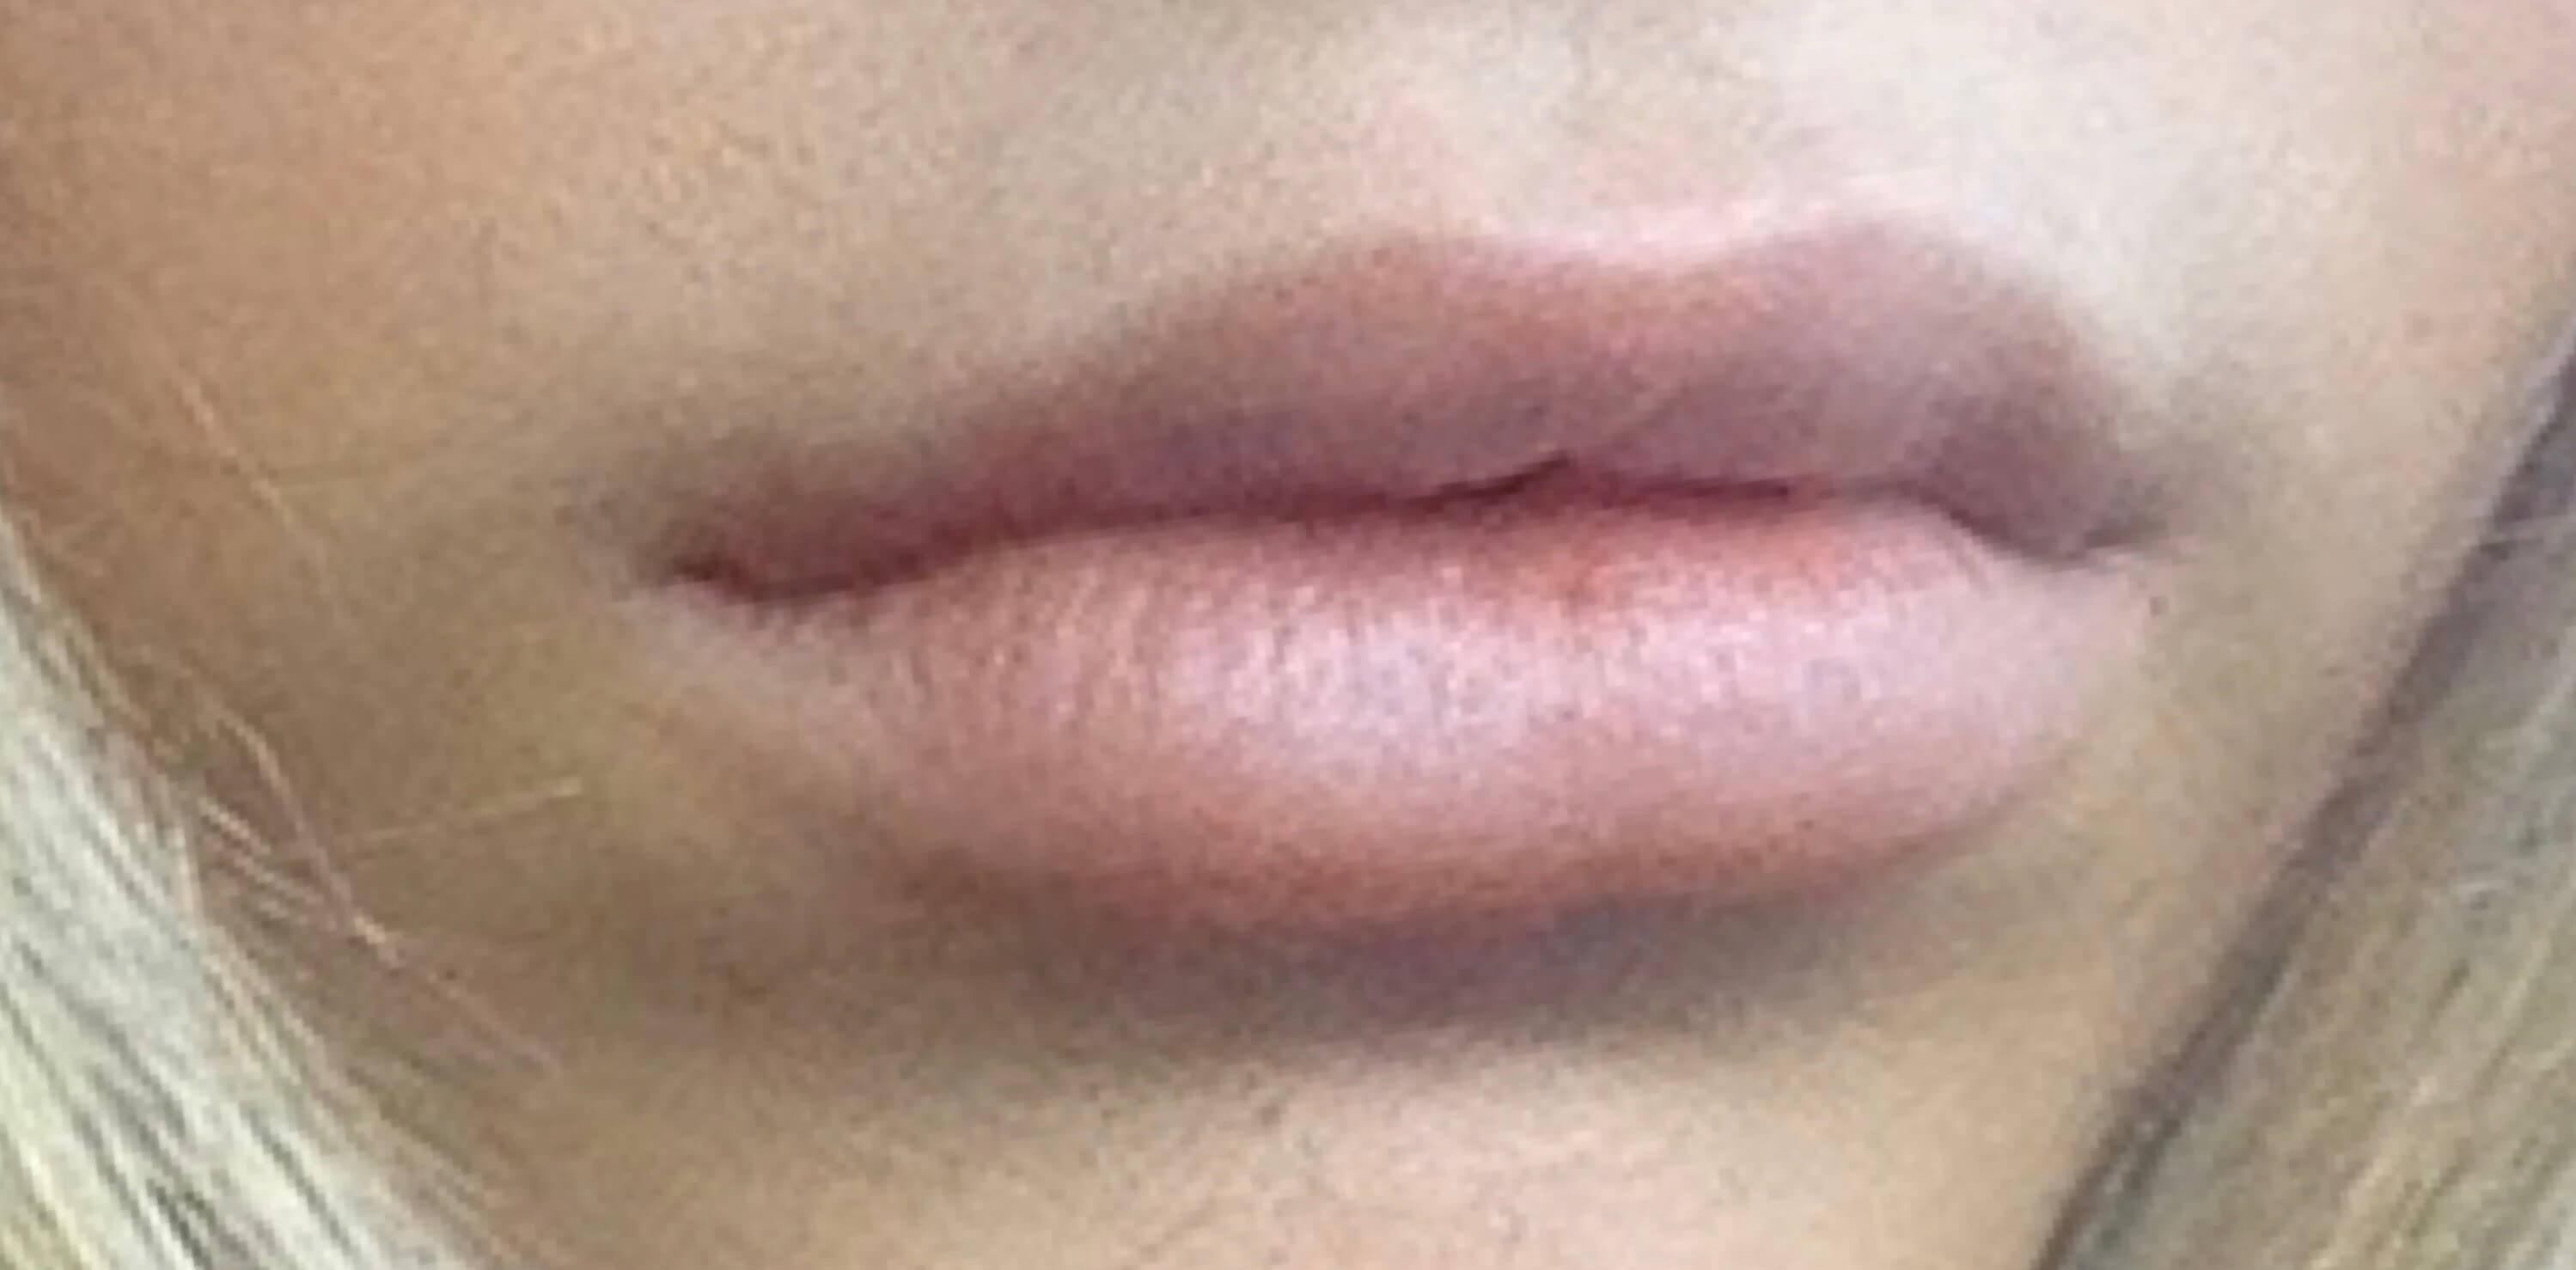 WOMAN IN DALLAS, TEXAS HAS LIP AUGMENTATION WITH JUVEDERM ULTRA PLUS FILLER